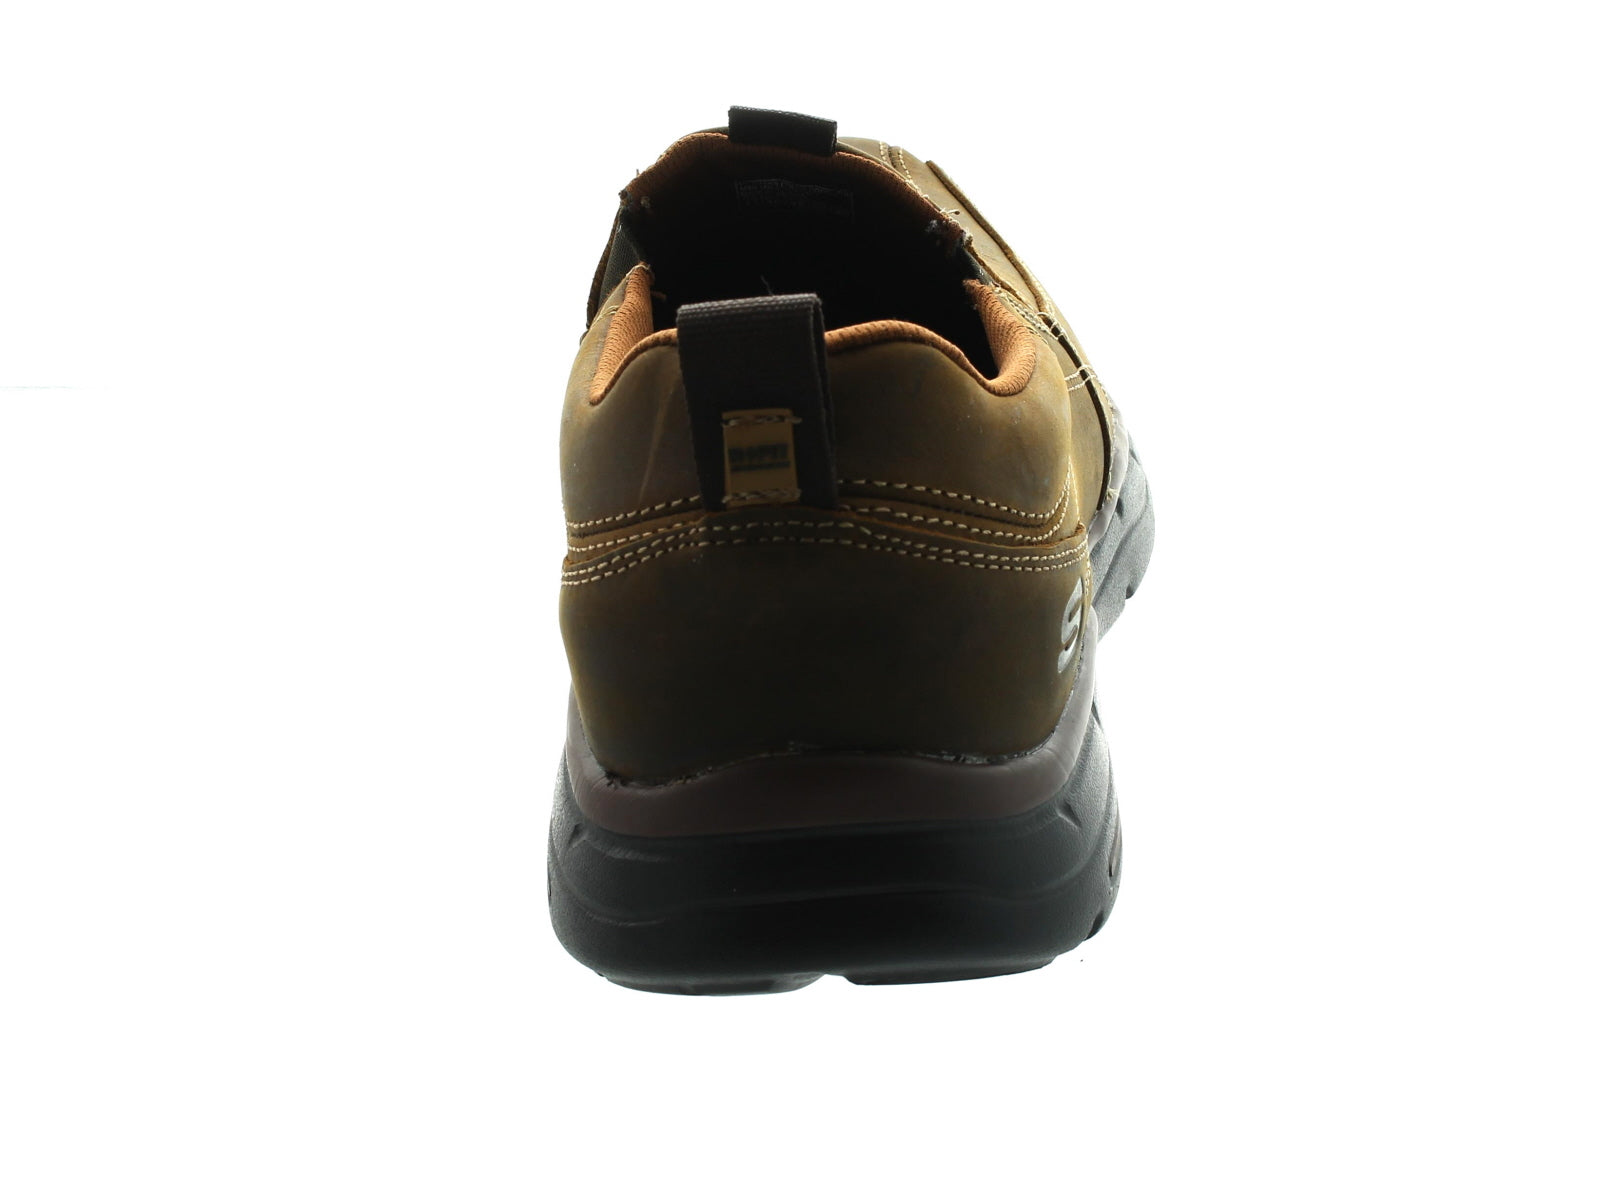 Skechers 64503 in Brown back view